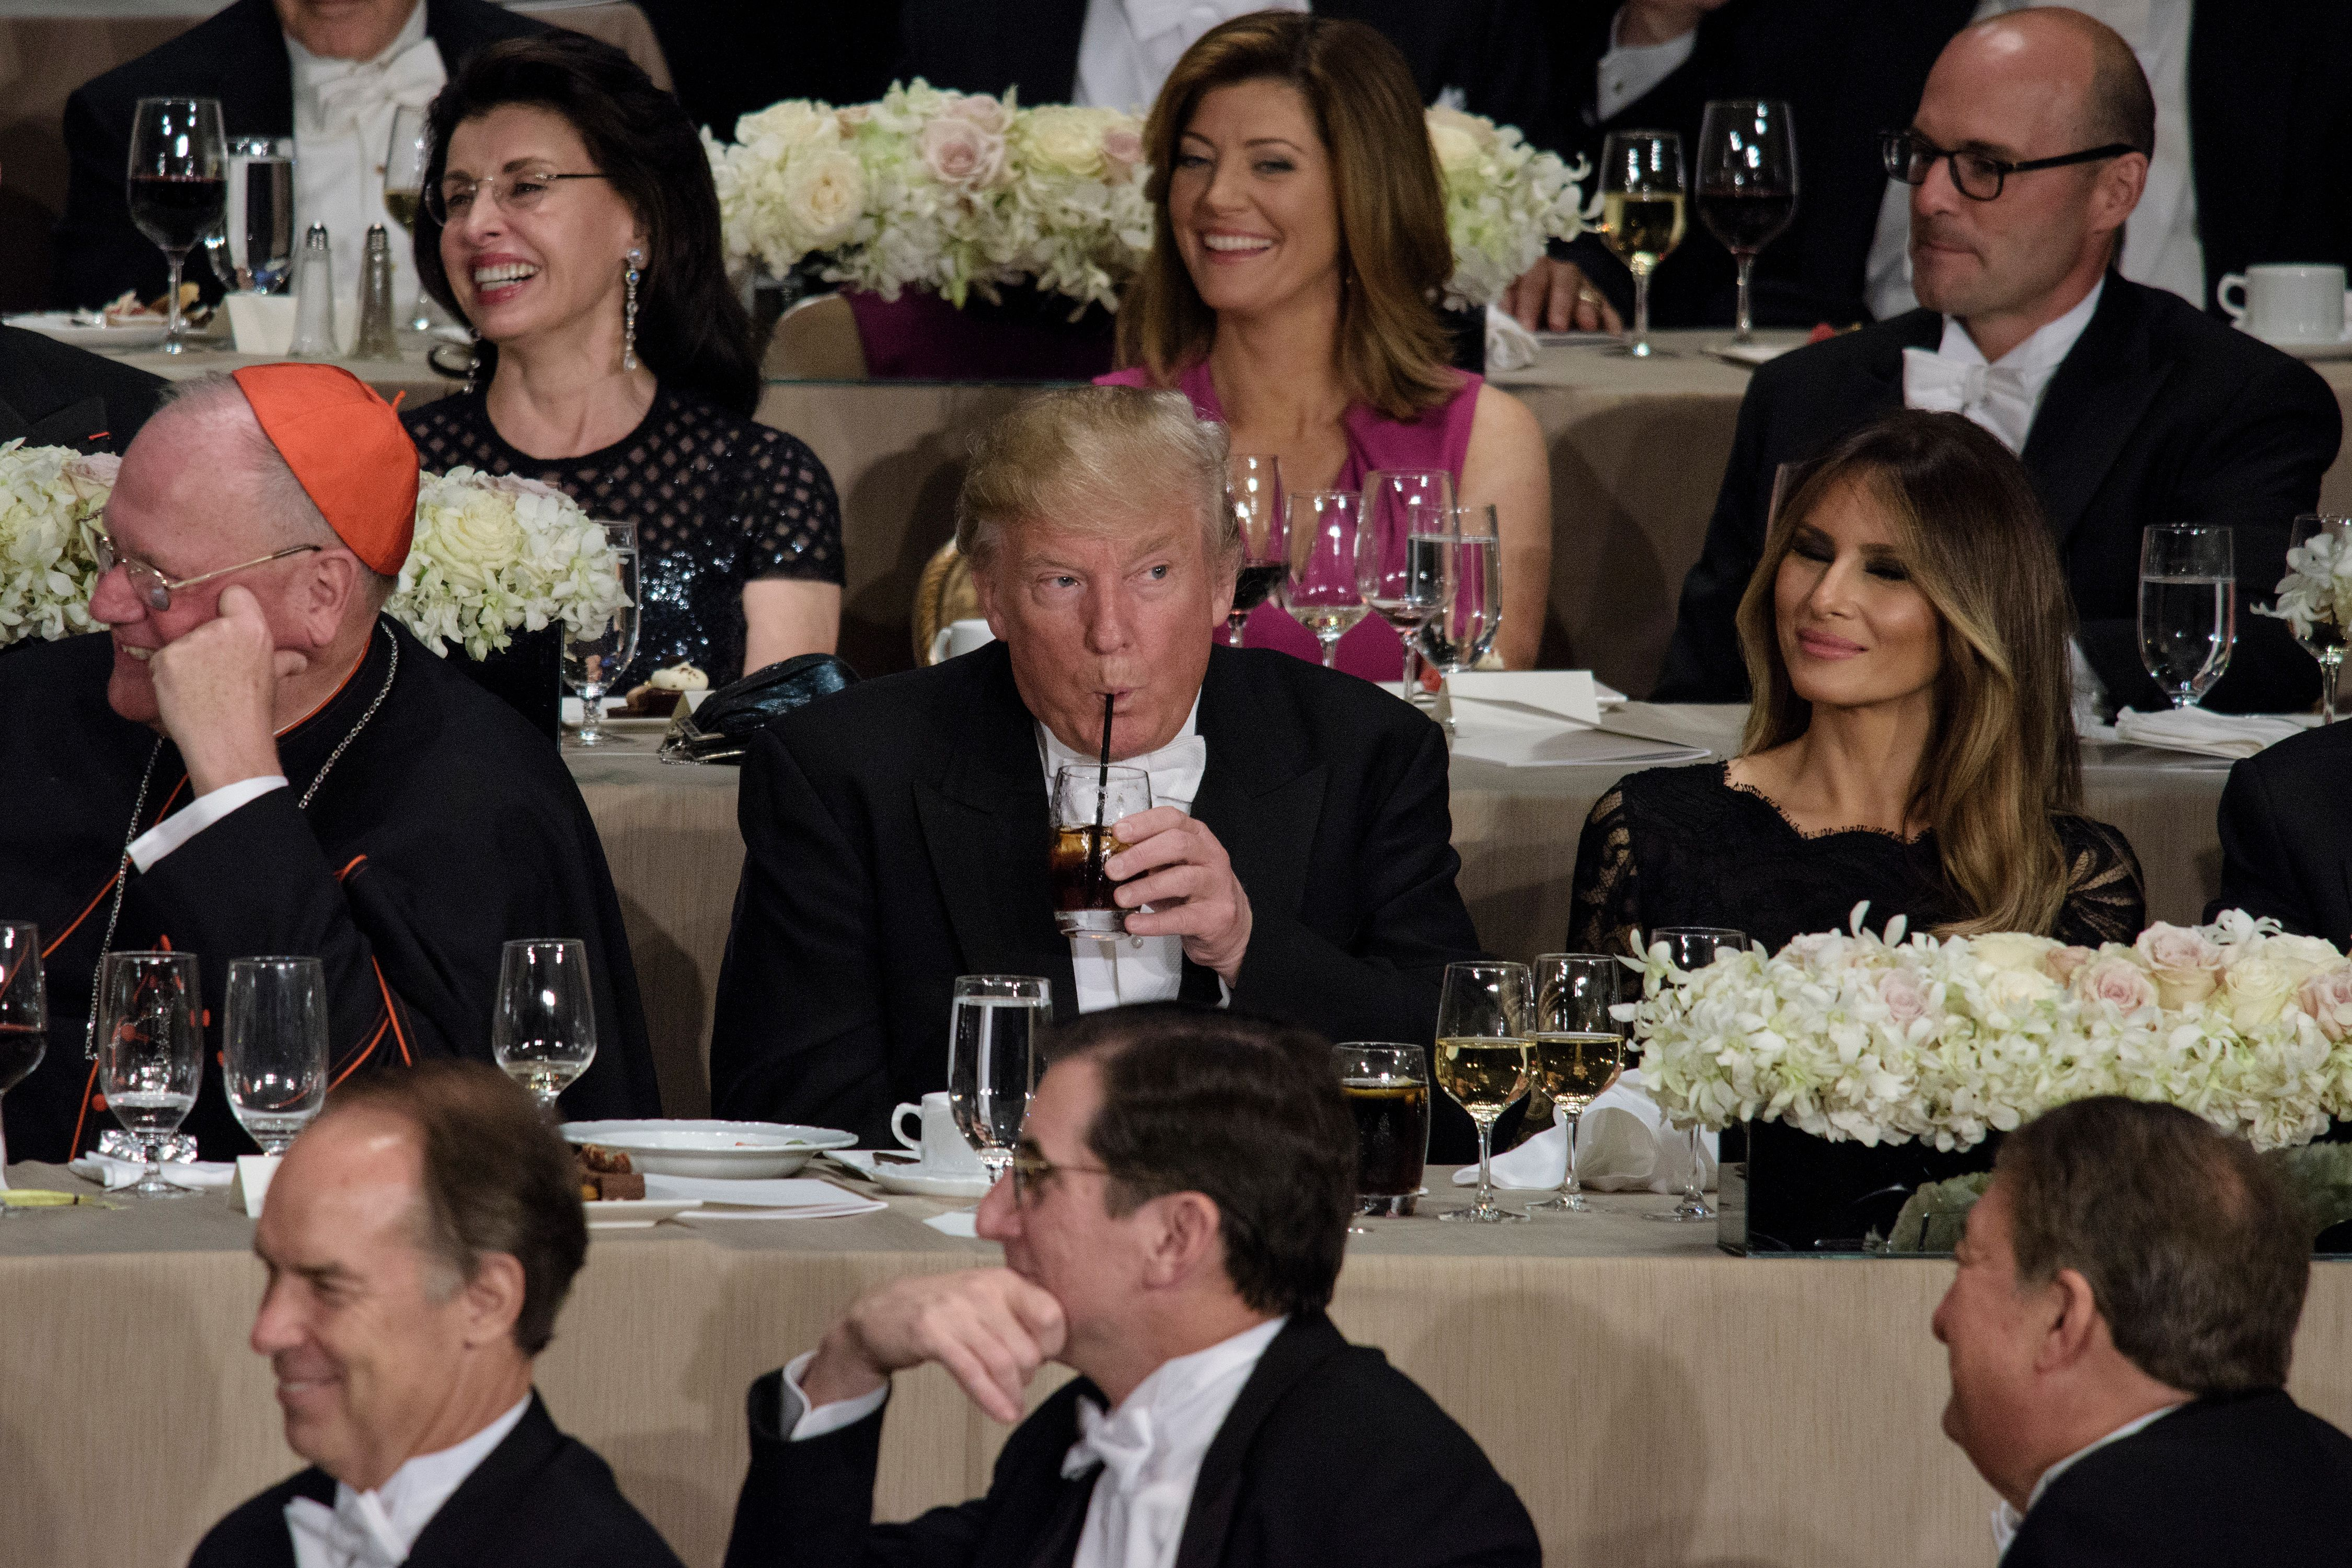 From left Timothy Cardinal Dolan, Archbishop of New York, Donald Trump, Melania Trump and others listen as Democratic presidential nominee Hillary Clinton speaks during the Alfred E. Smith Memorial Foundation Dinner at Waldorf Astoria in New York, New York, on Oct. 20, 2016.